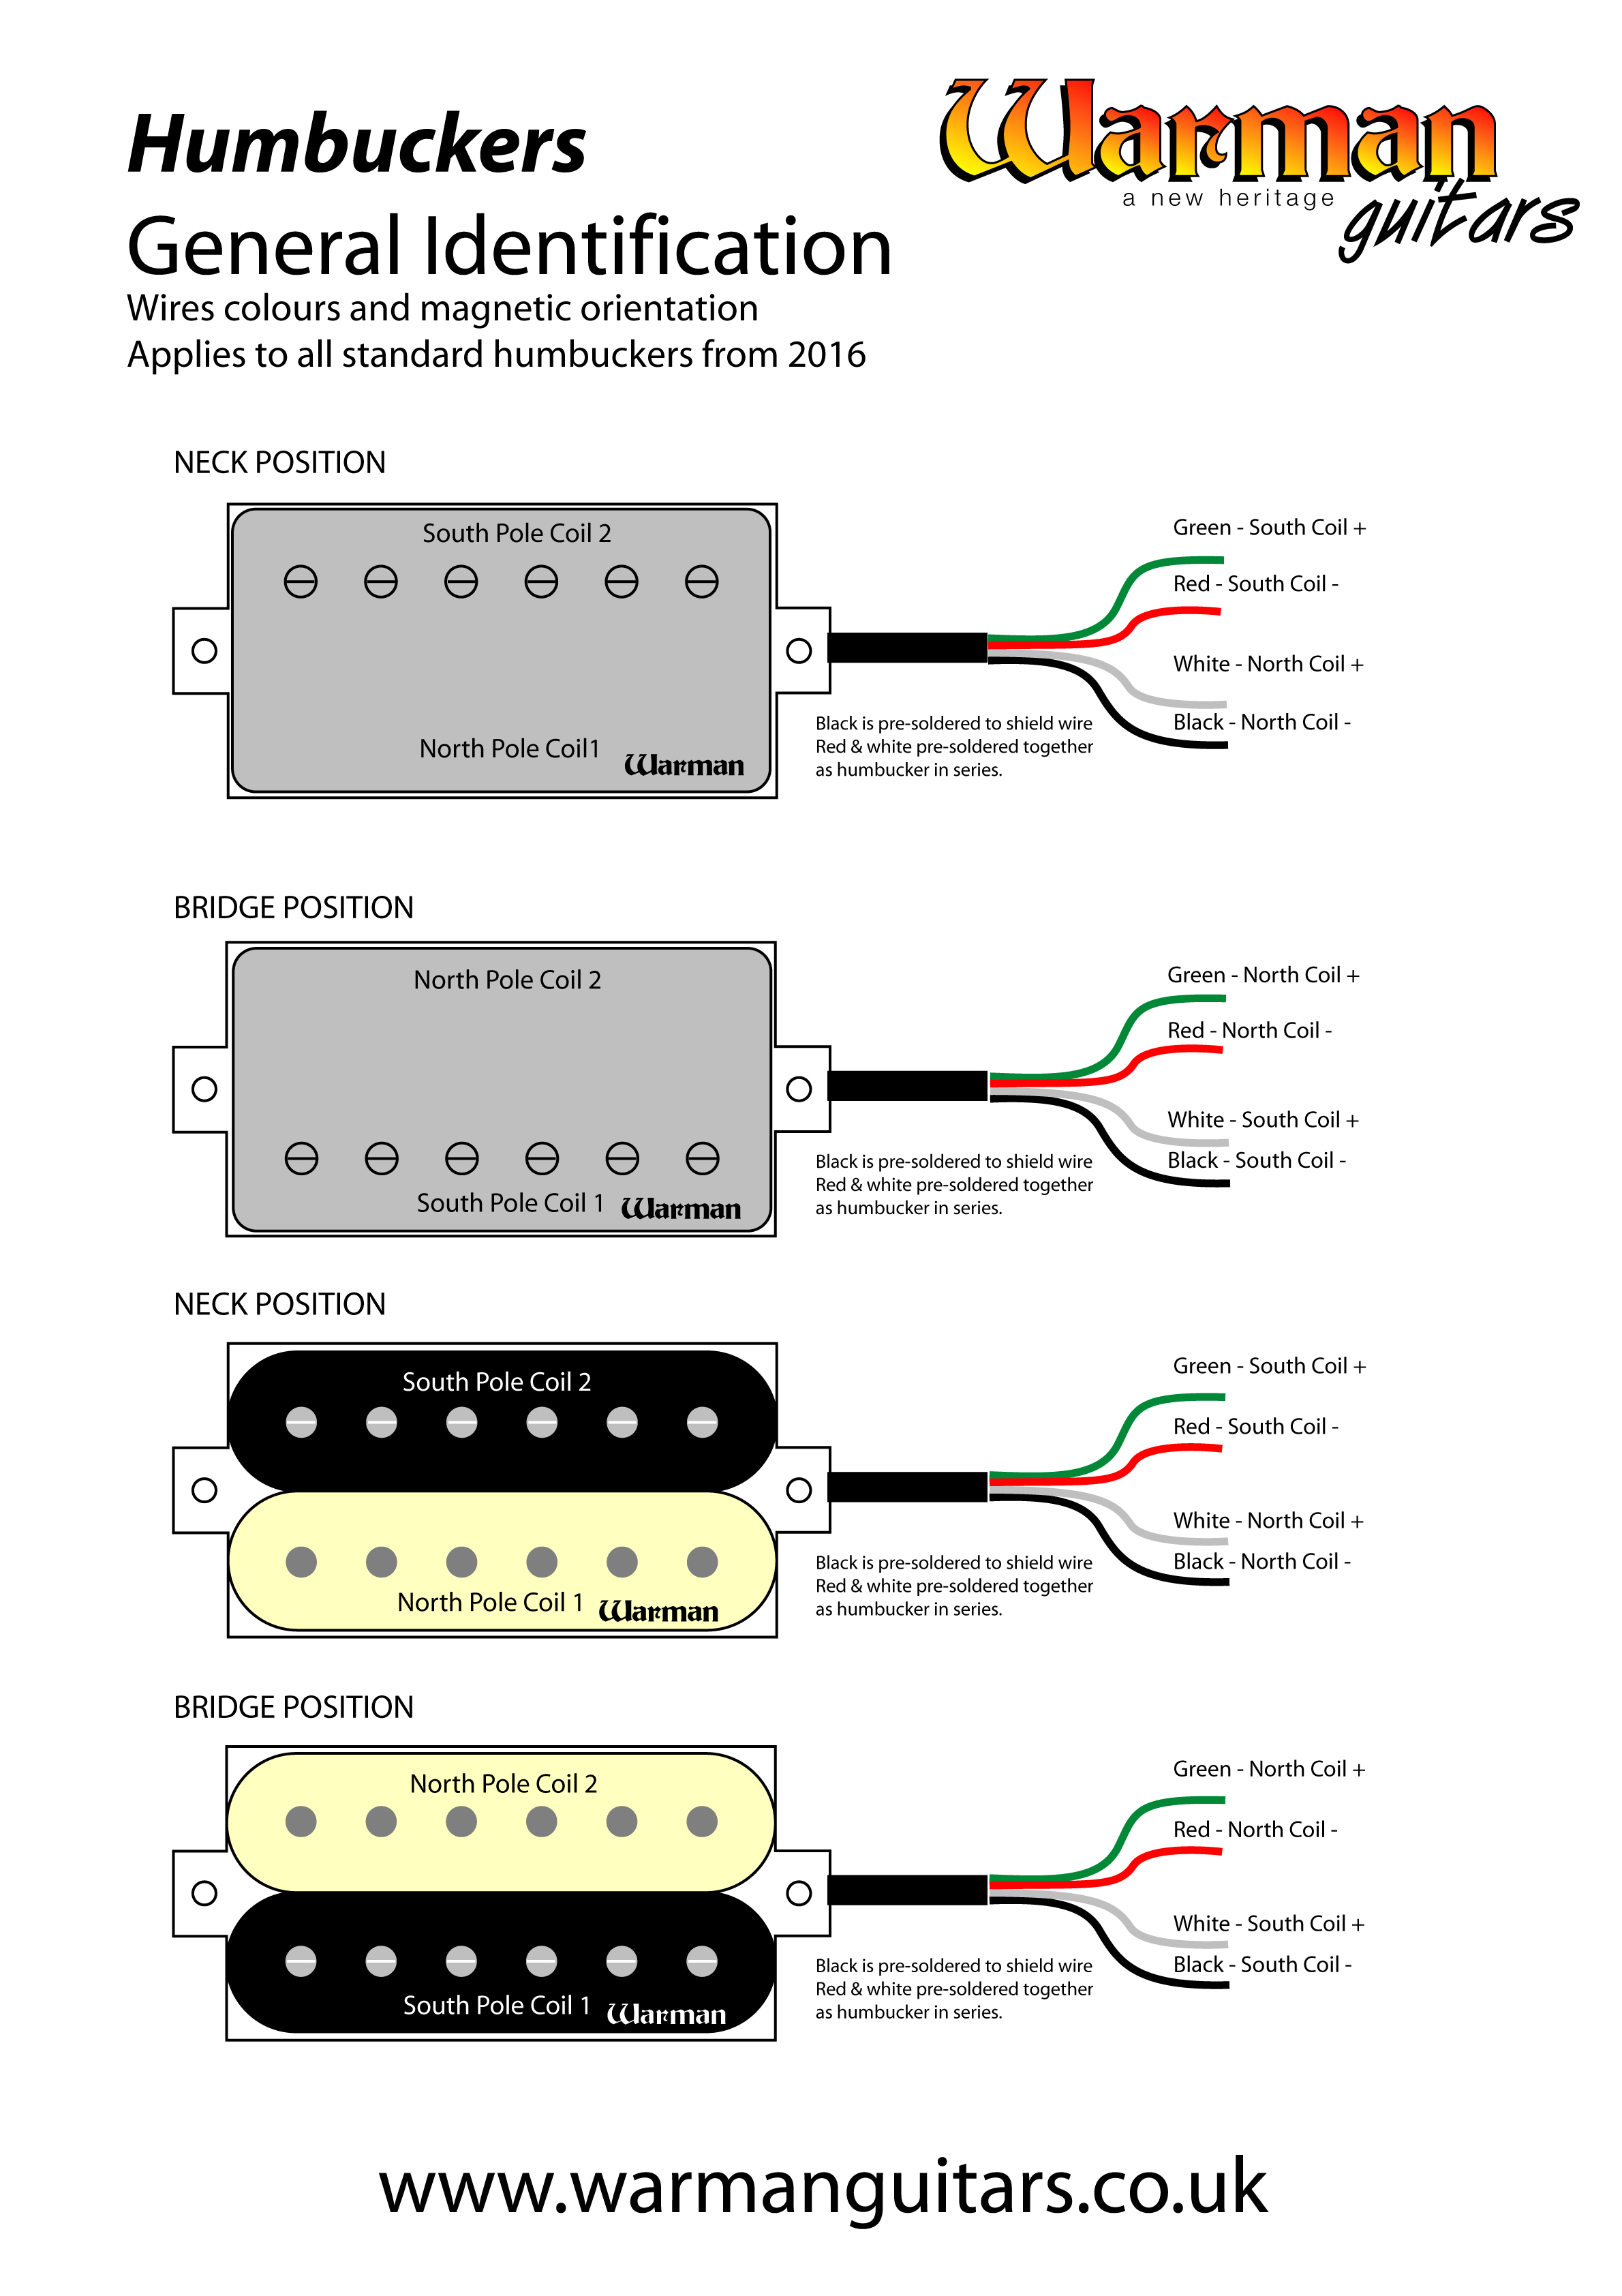 Humbucker Wire Colours  U2013 Warman Guitars